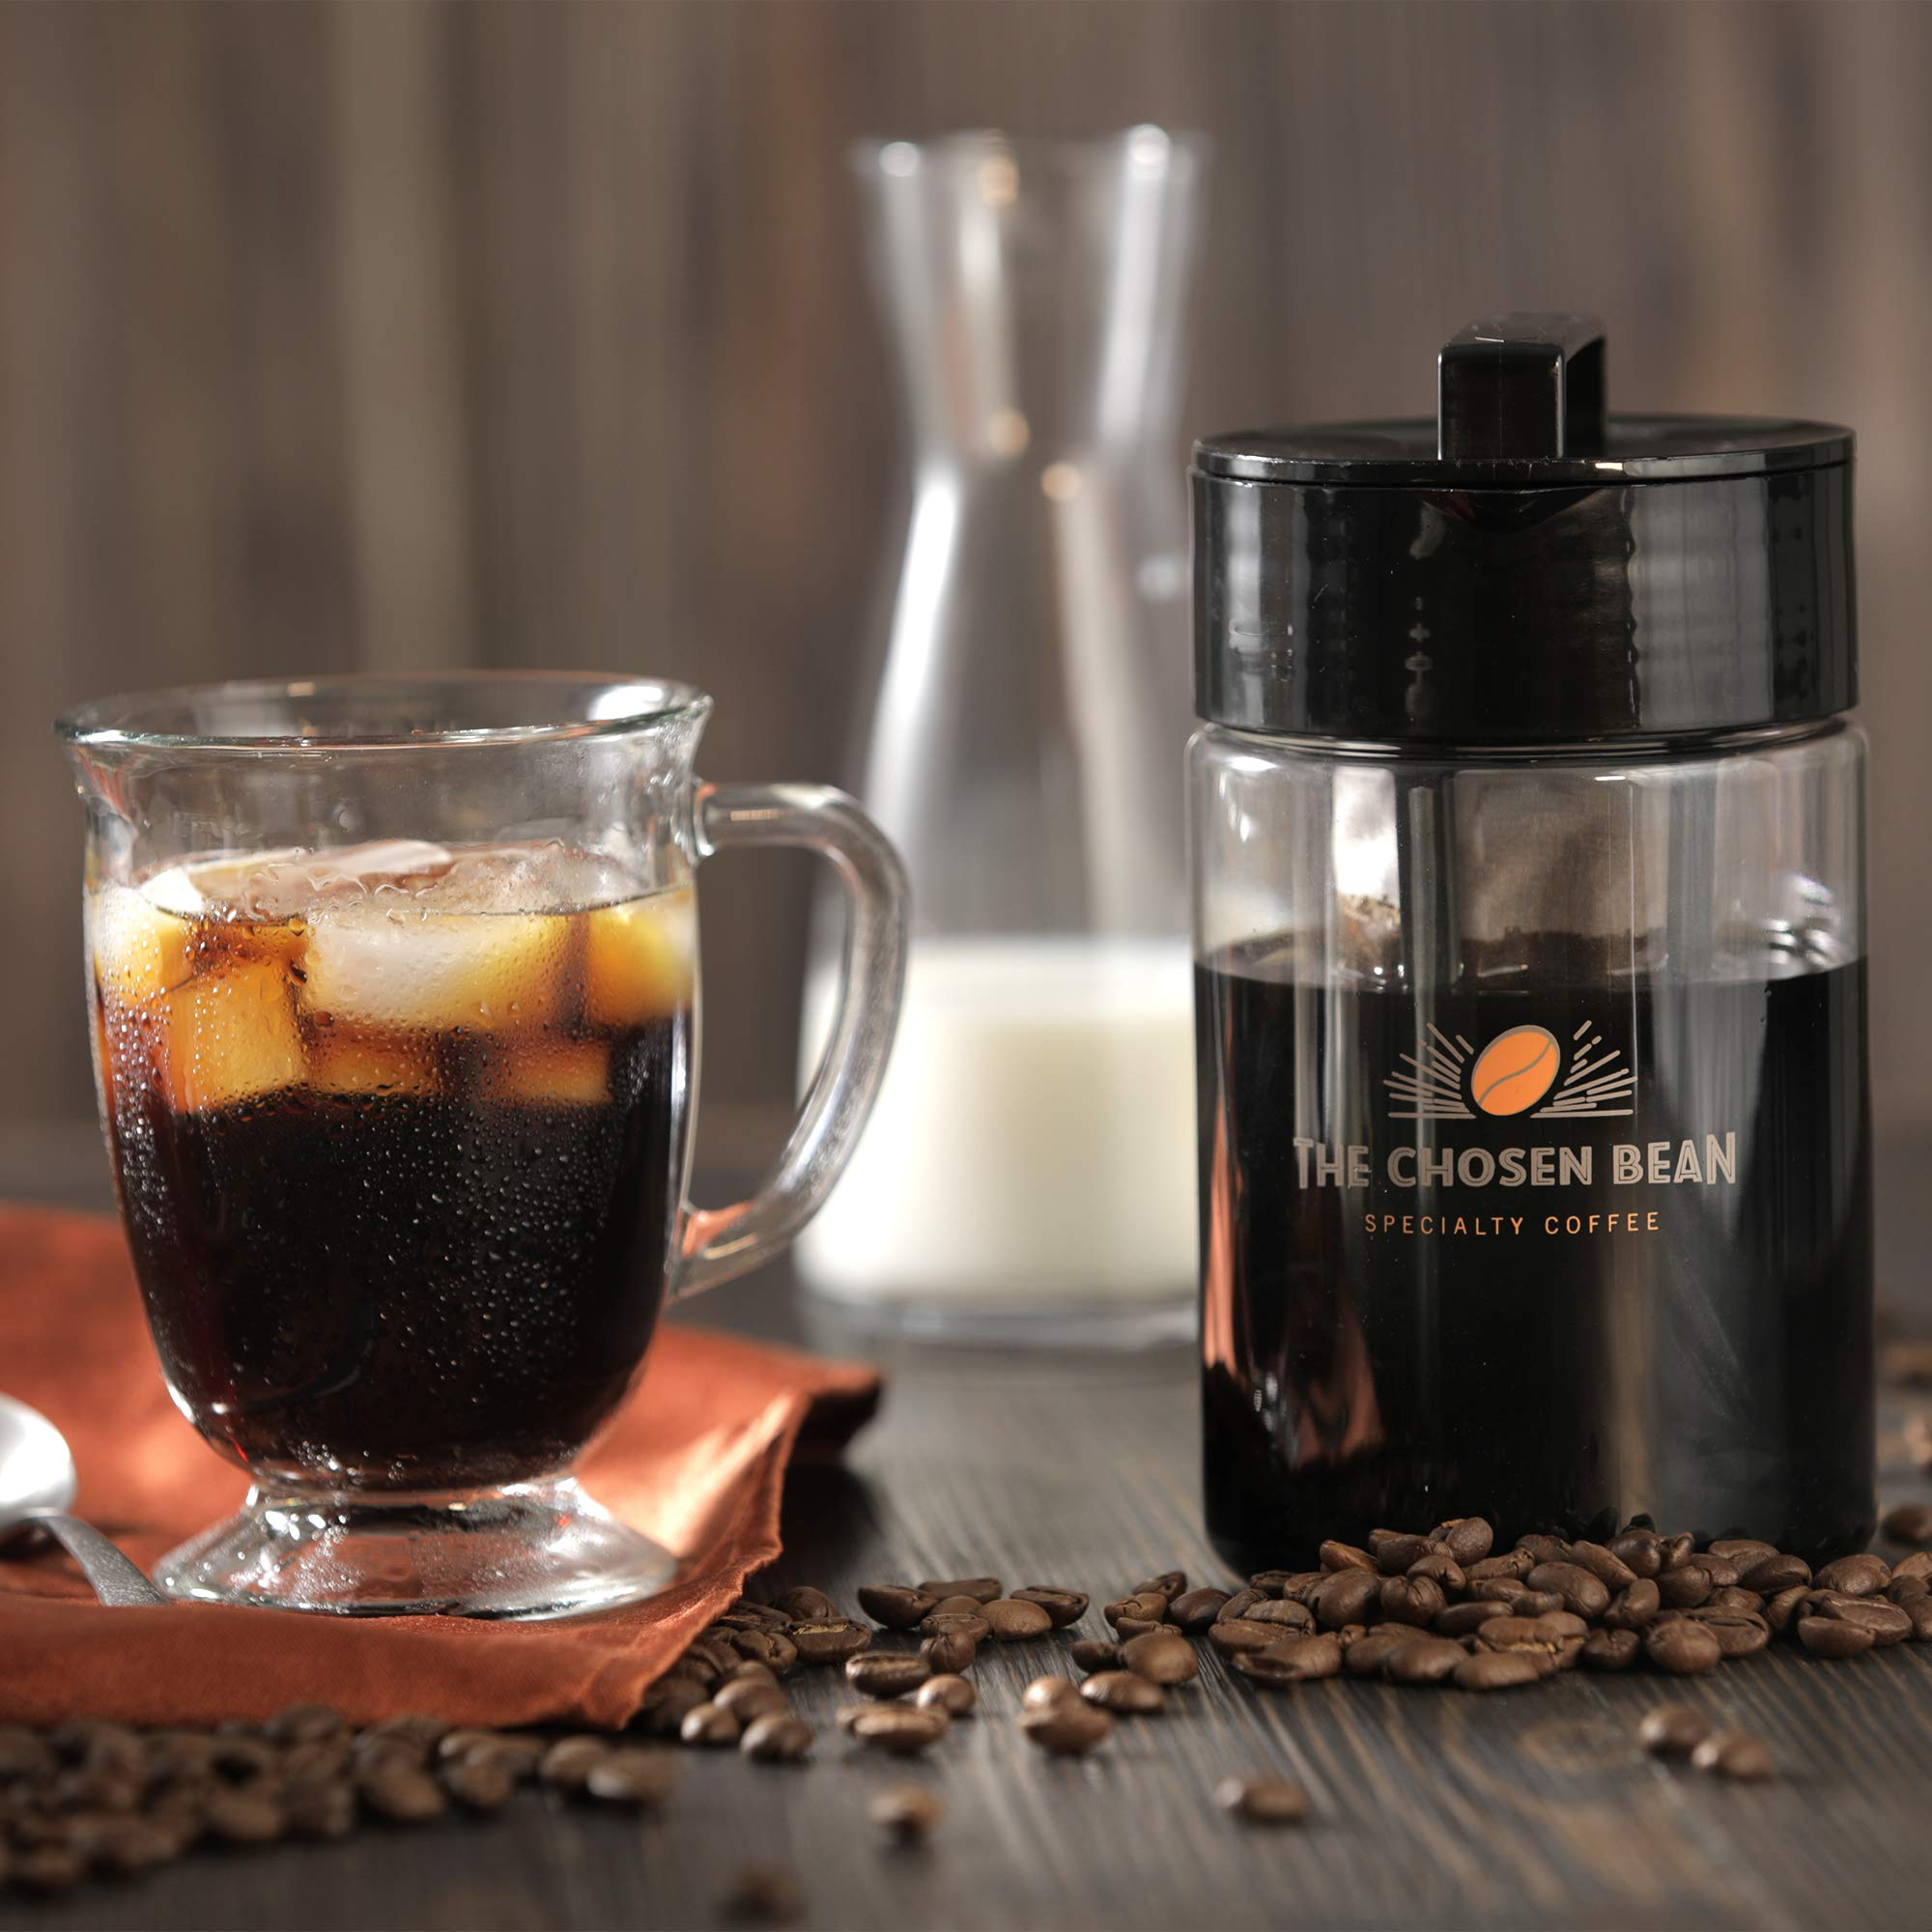 Cold Brew Coffee Solution Specialty Coffee Beans (Whole Bean, 5LB) by The Chosen Bean (Image #5)